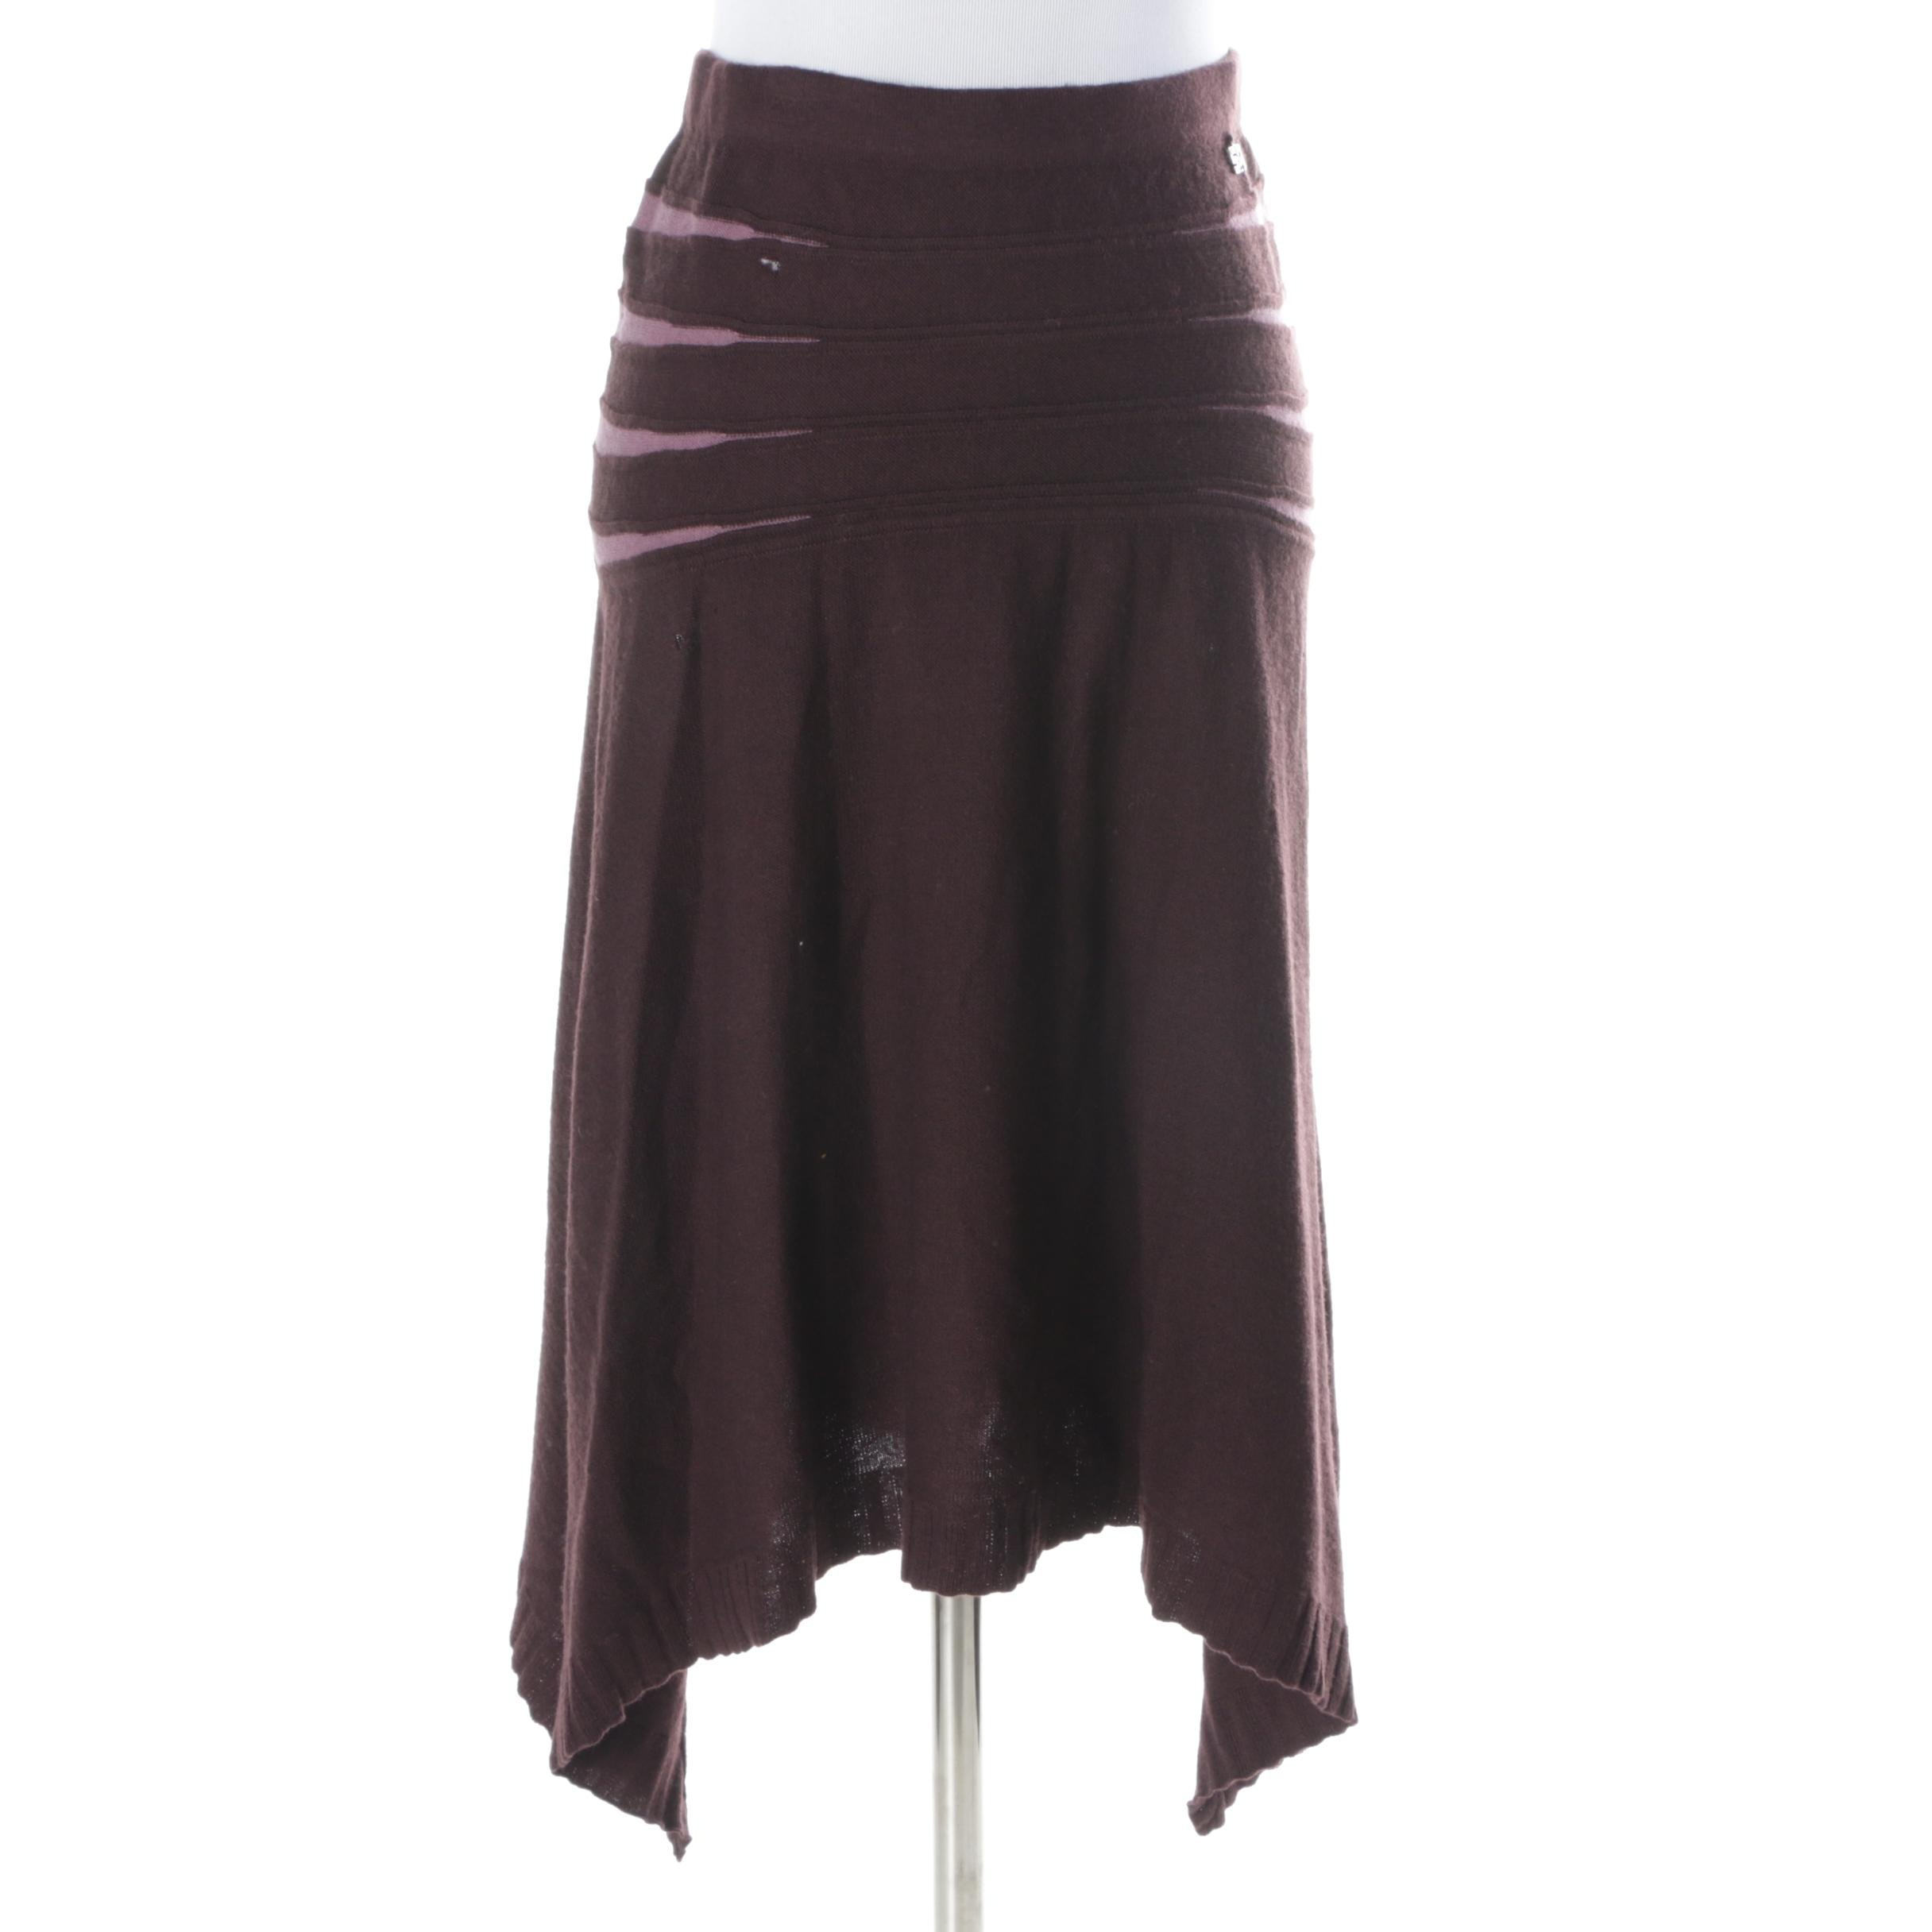 Sonia Rykiel Knit Skirt